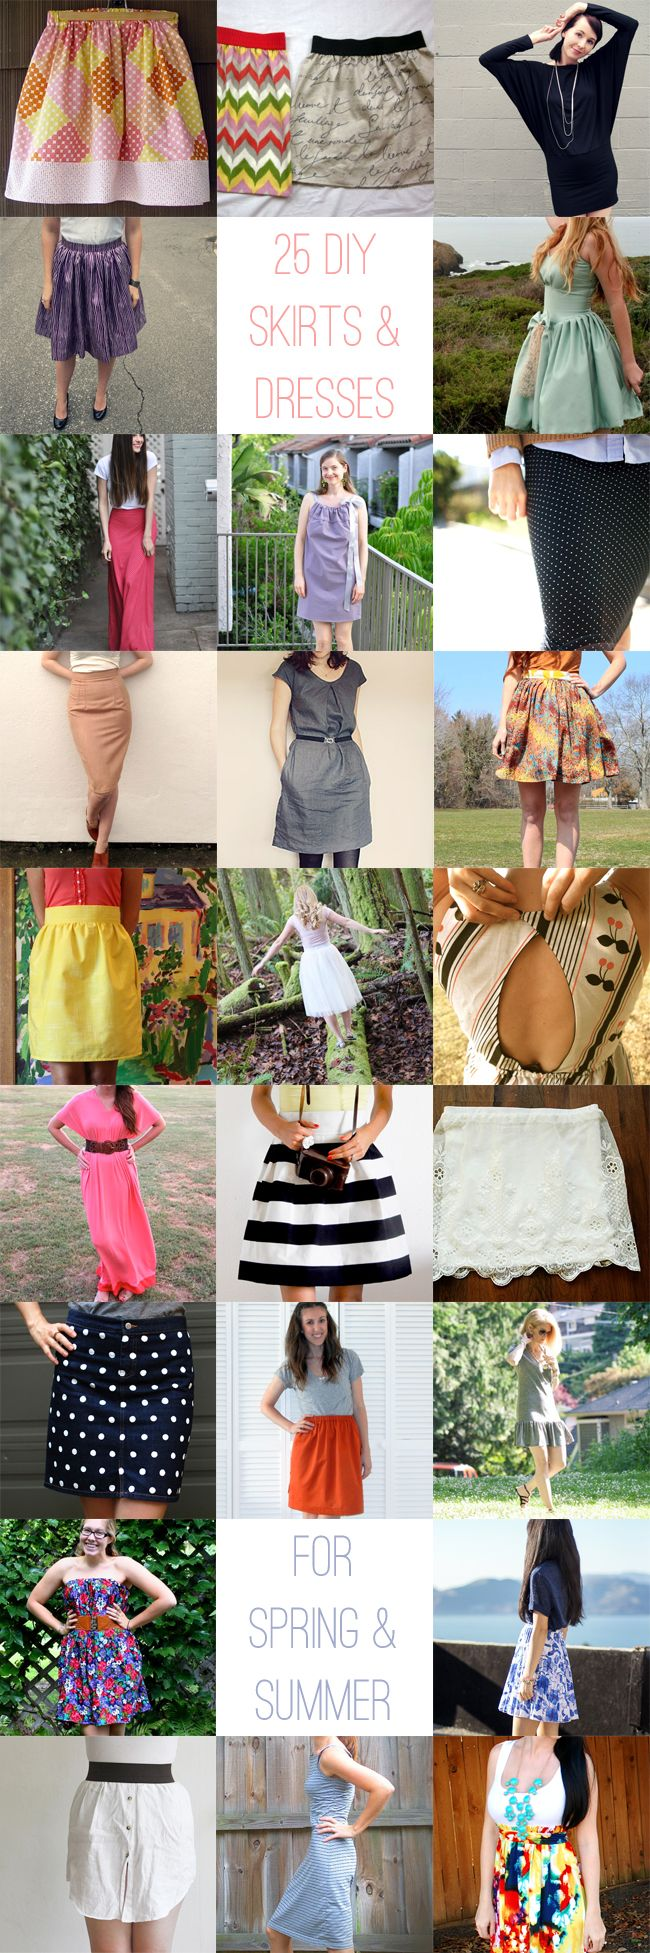 25 DIY Dresses and Skirts for Spring and Summer - Henry Happened